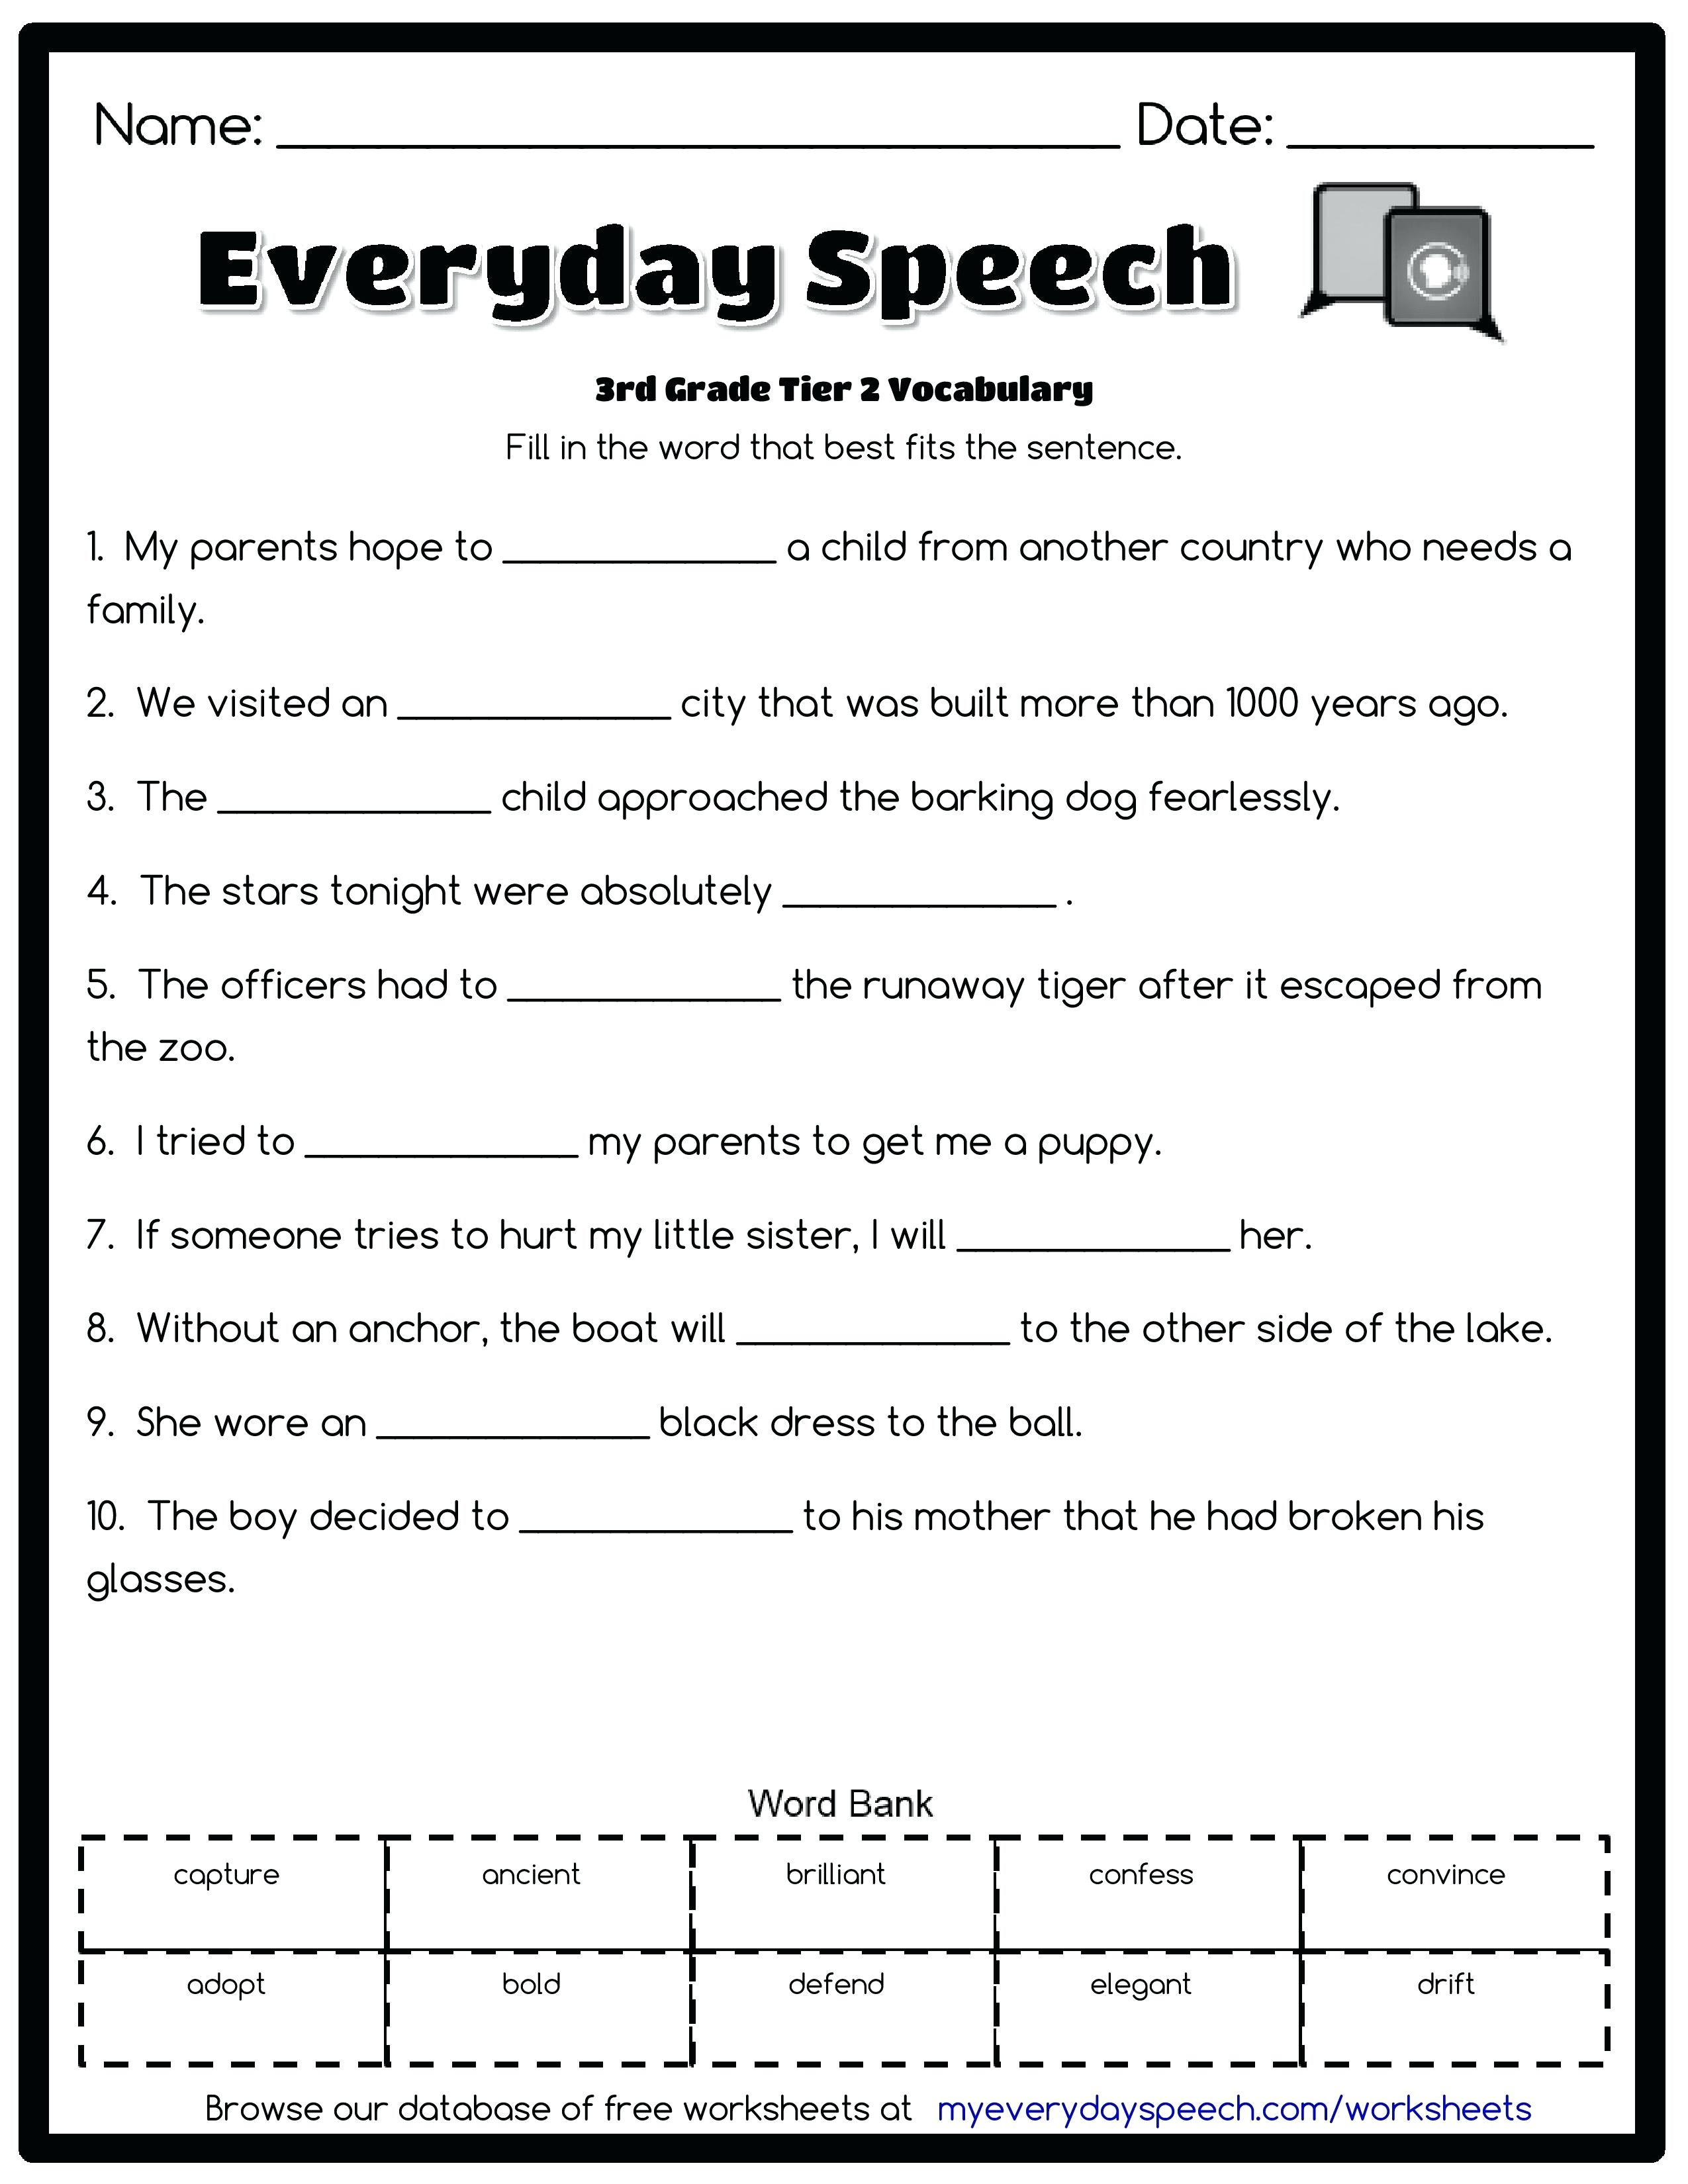 Free Printable Vocabulary Worksheets For 3rd Grade